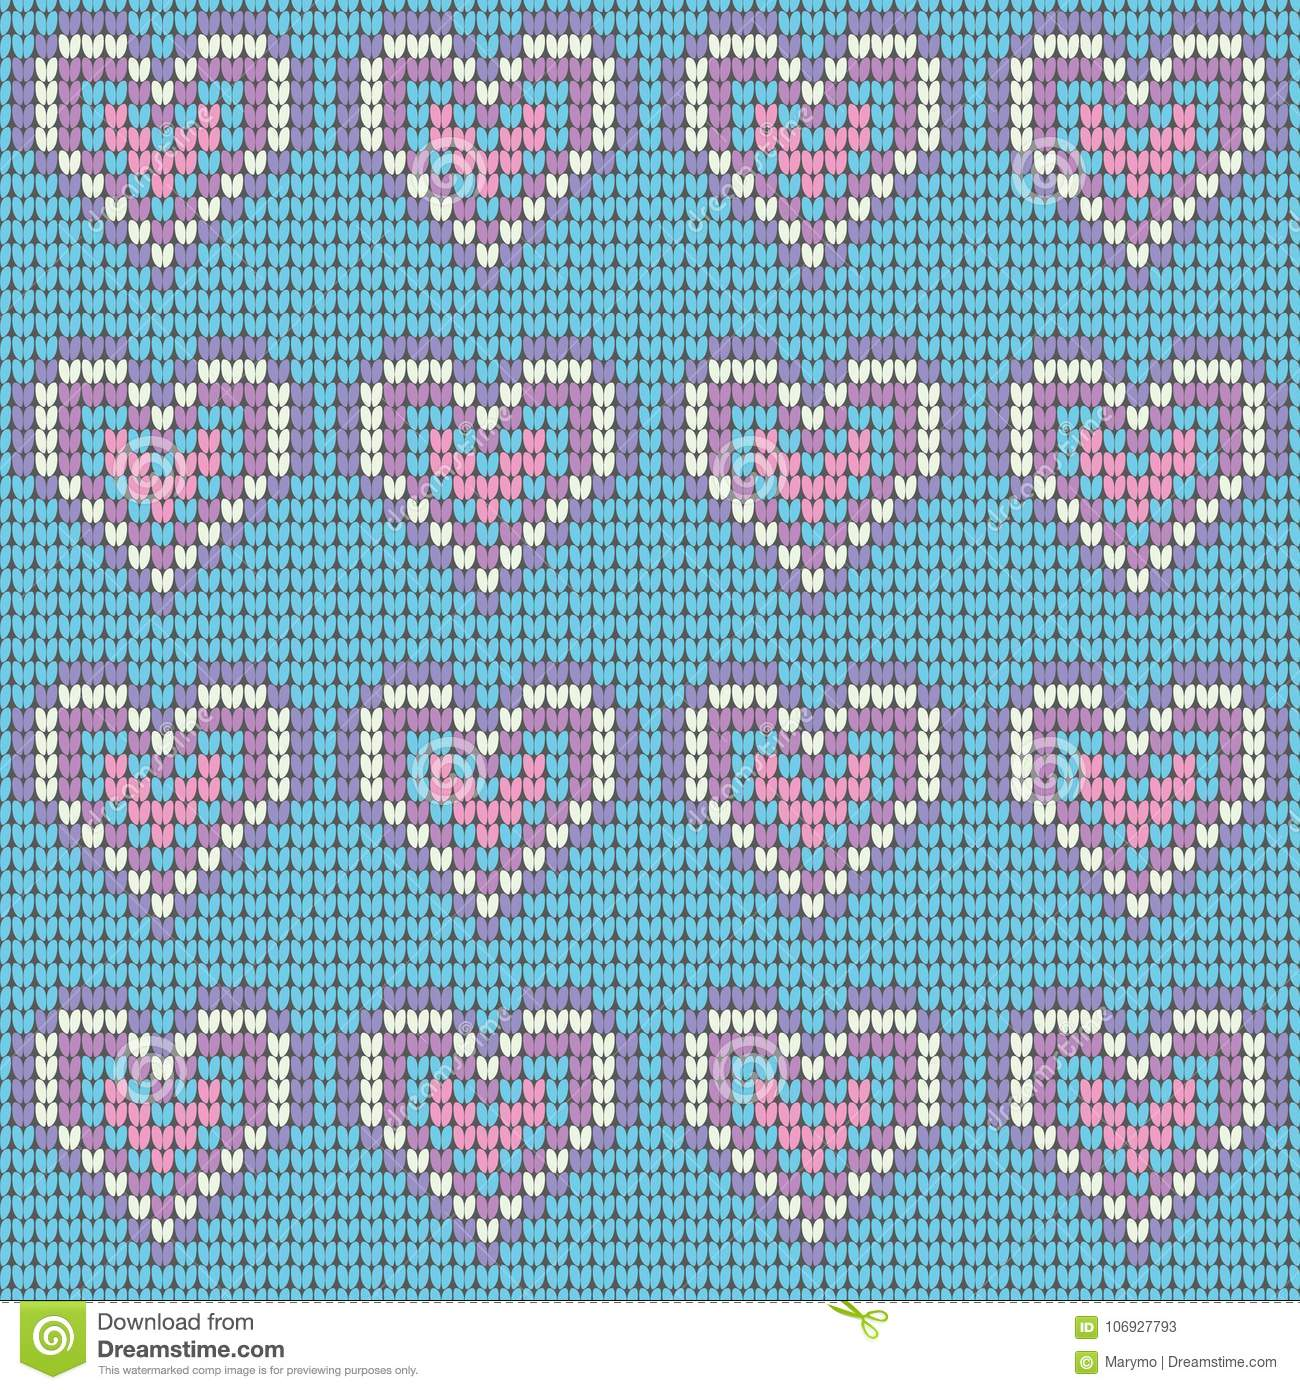 Valentines Day Love Heart Knitted Seamless Pattern. Textures In Blue ...